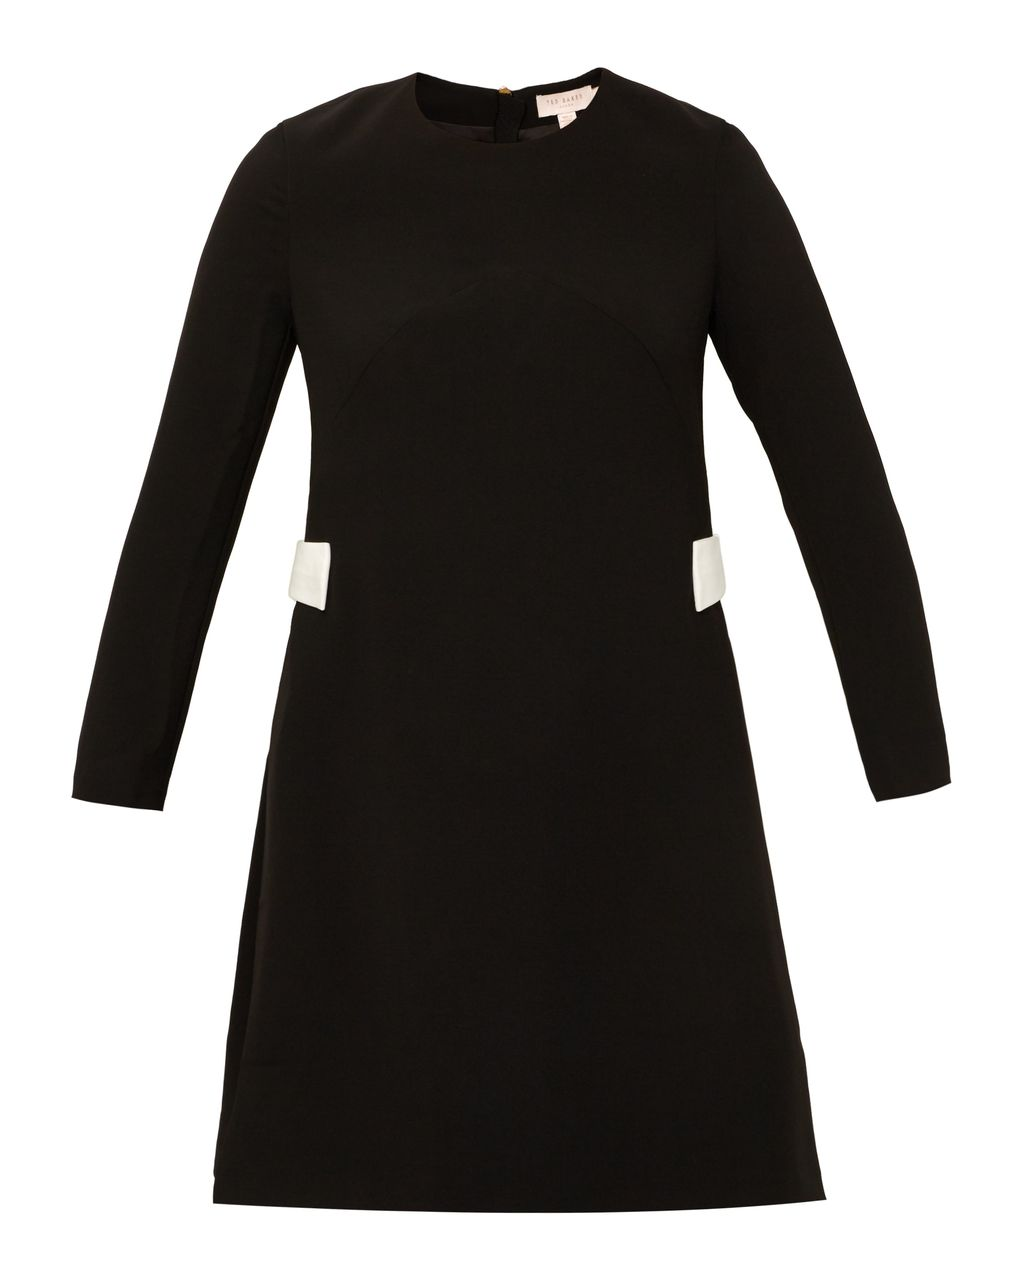 Emorly Side Bow Dress, Black - pattern: plain; predominant colour: black; occasions: evening; length: on the knee; fit: fitted at waist & bust; style: fit & flare; fibres: polyester/polyamide - stretch; neckline: crew; sleeve length: long sleeve; sleeve style: standard; pattern type: fabric; texture group: other - light to midweight; season: s/s 2016; wardrobe: event